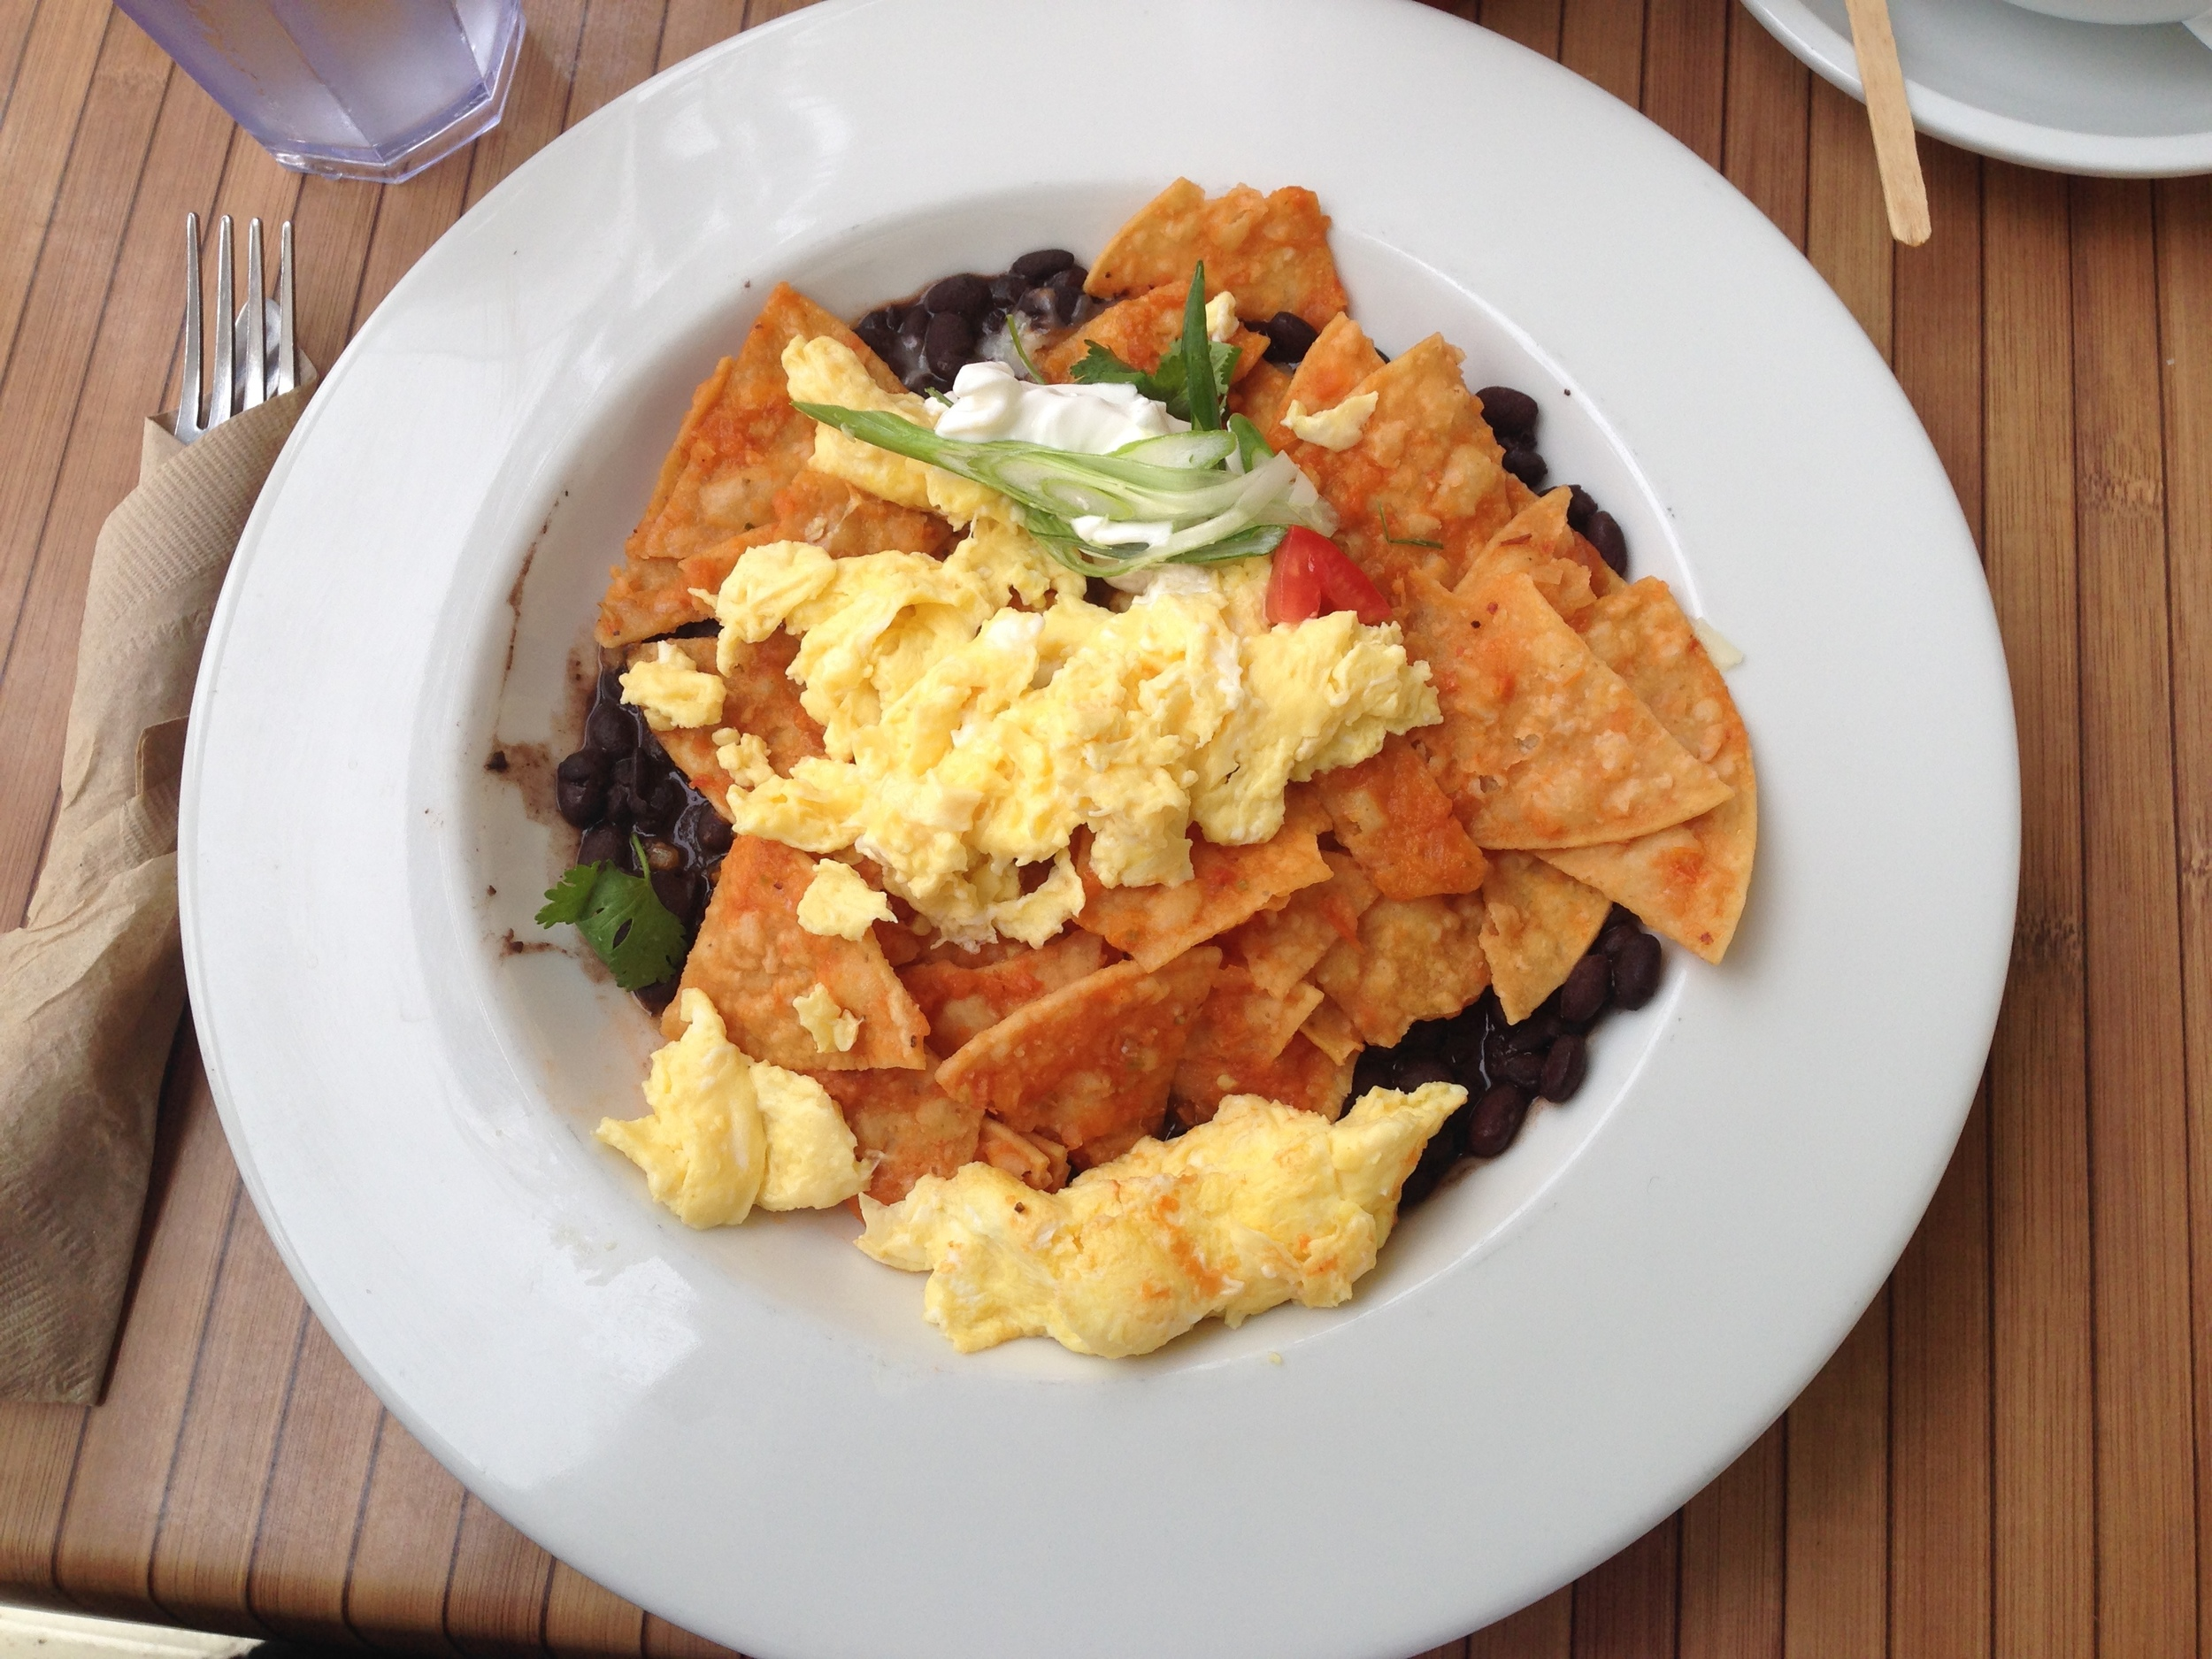 Mission Chilaquiles